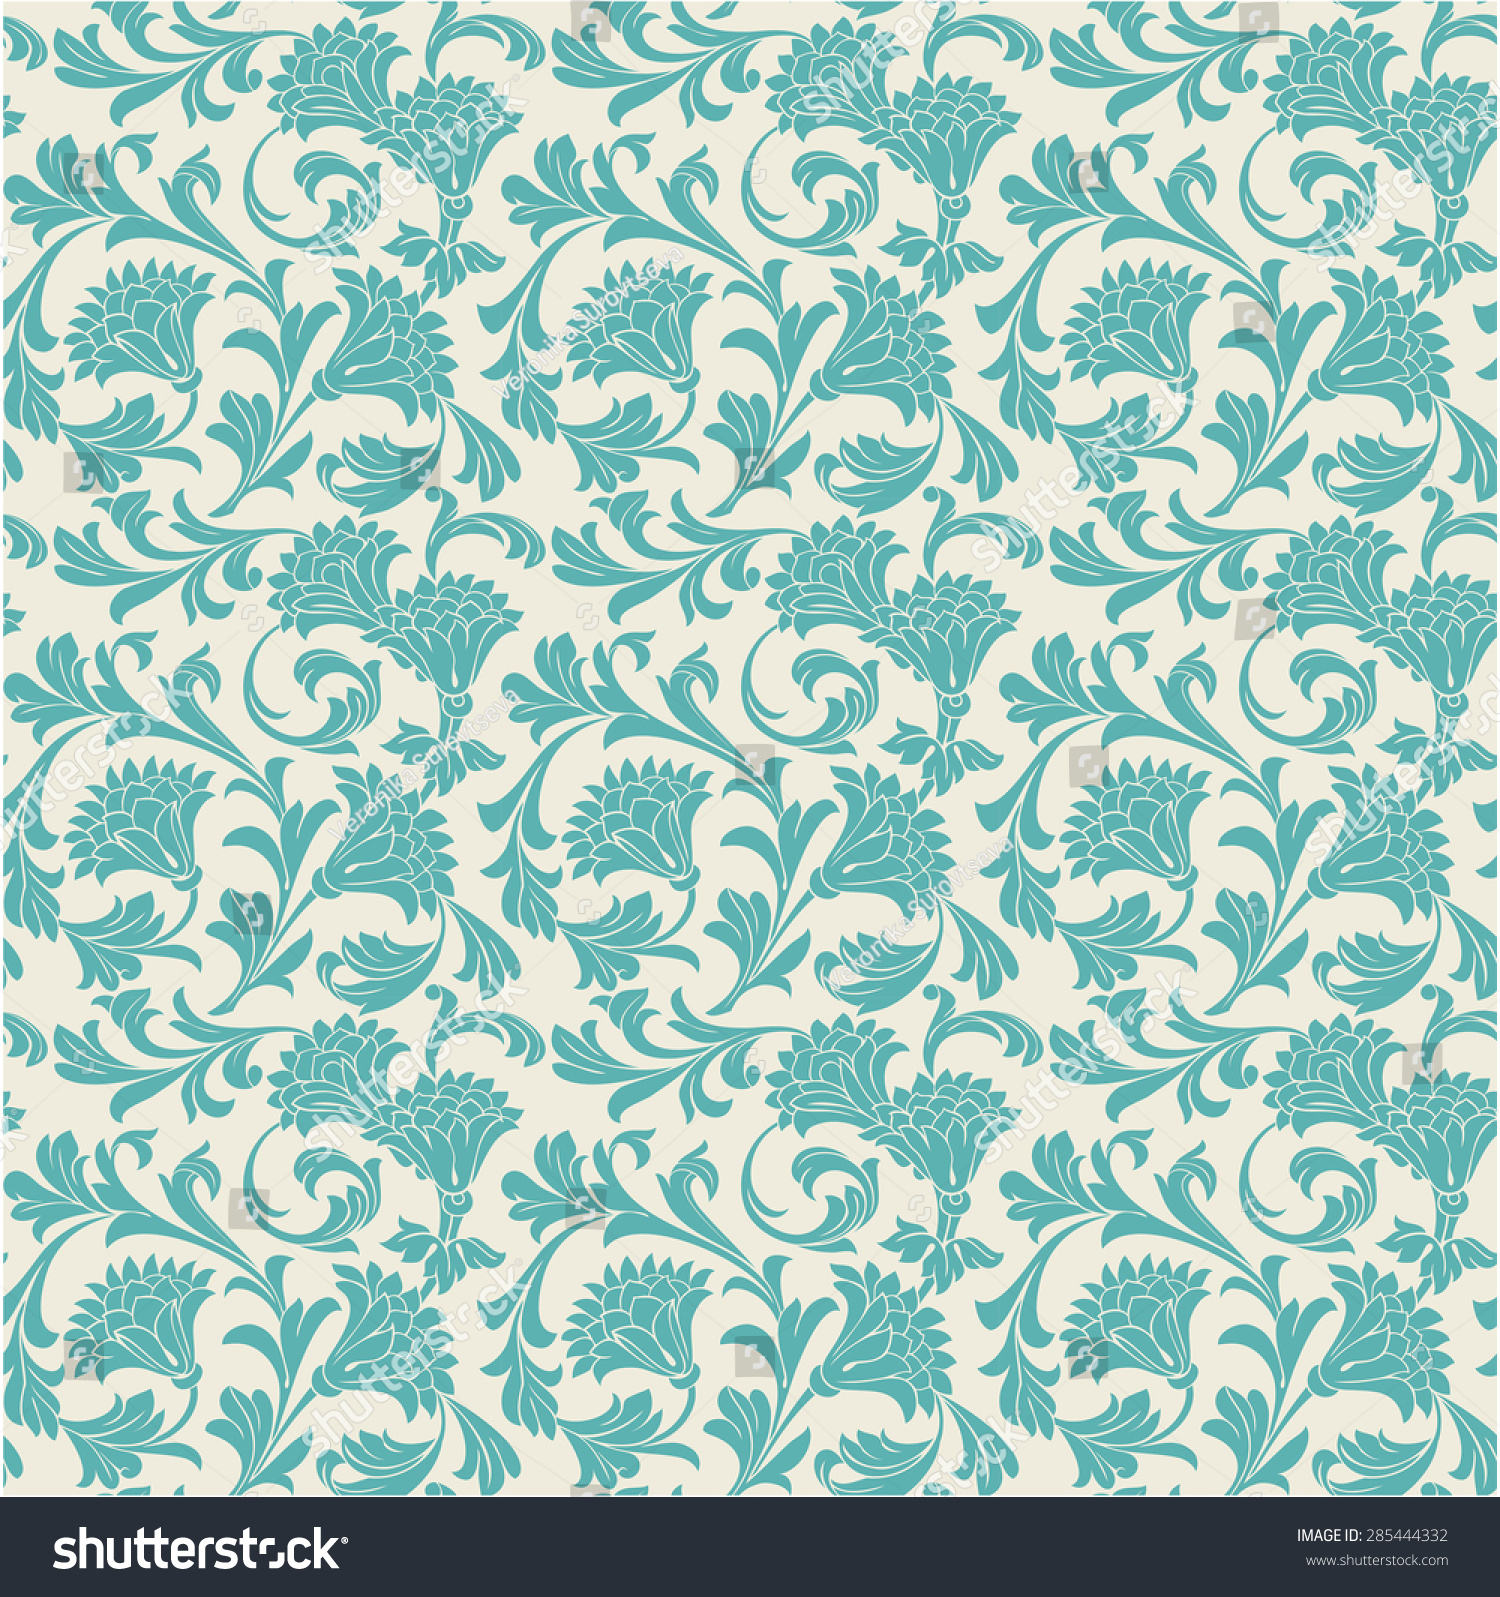 Seamless Vintage Floral Wallpaper Pattern Vector Stock Vector